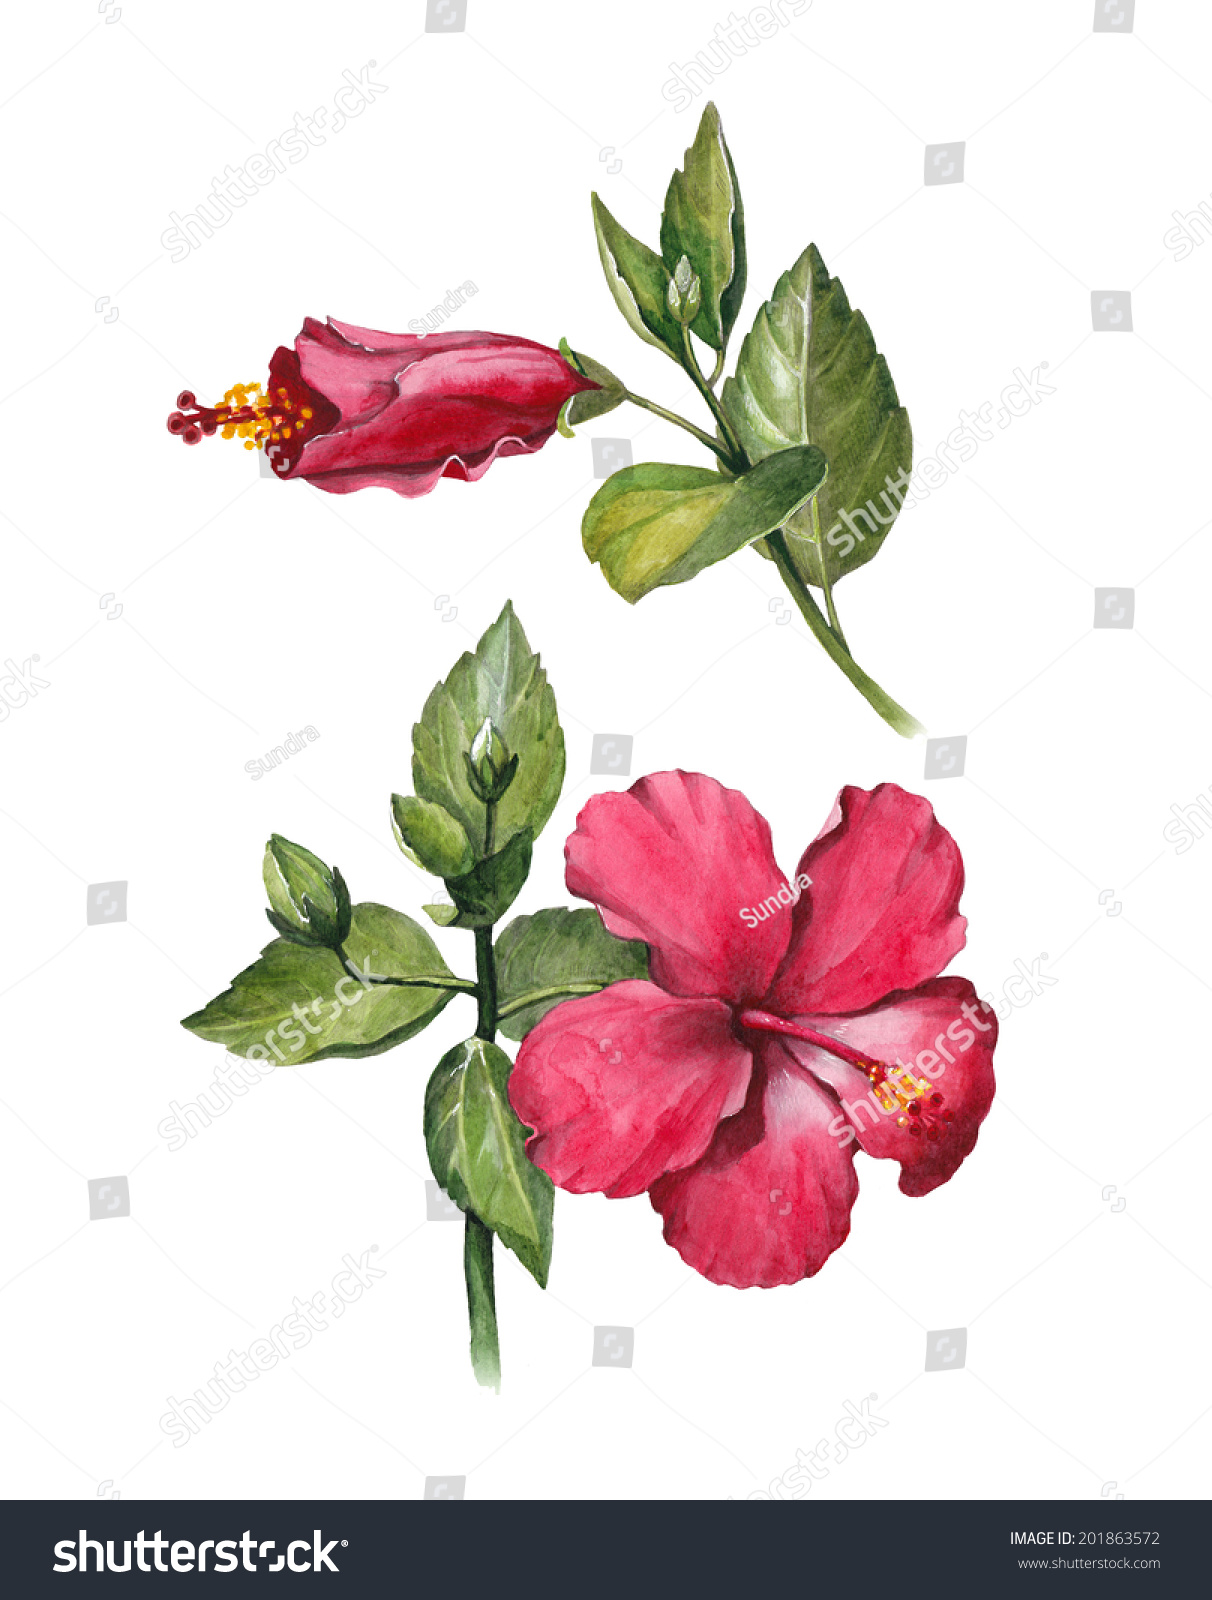 Watercolor Hibiscus Flower Illustration Stock Illustration 201863572